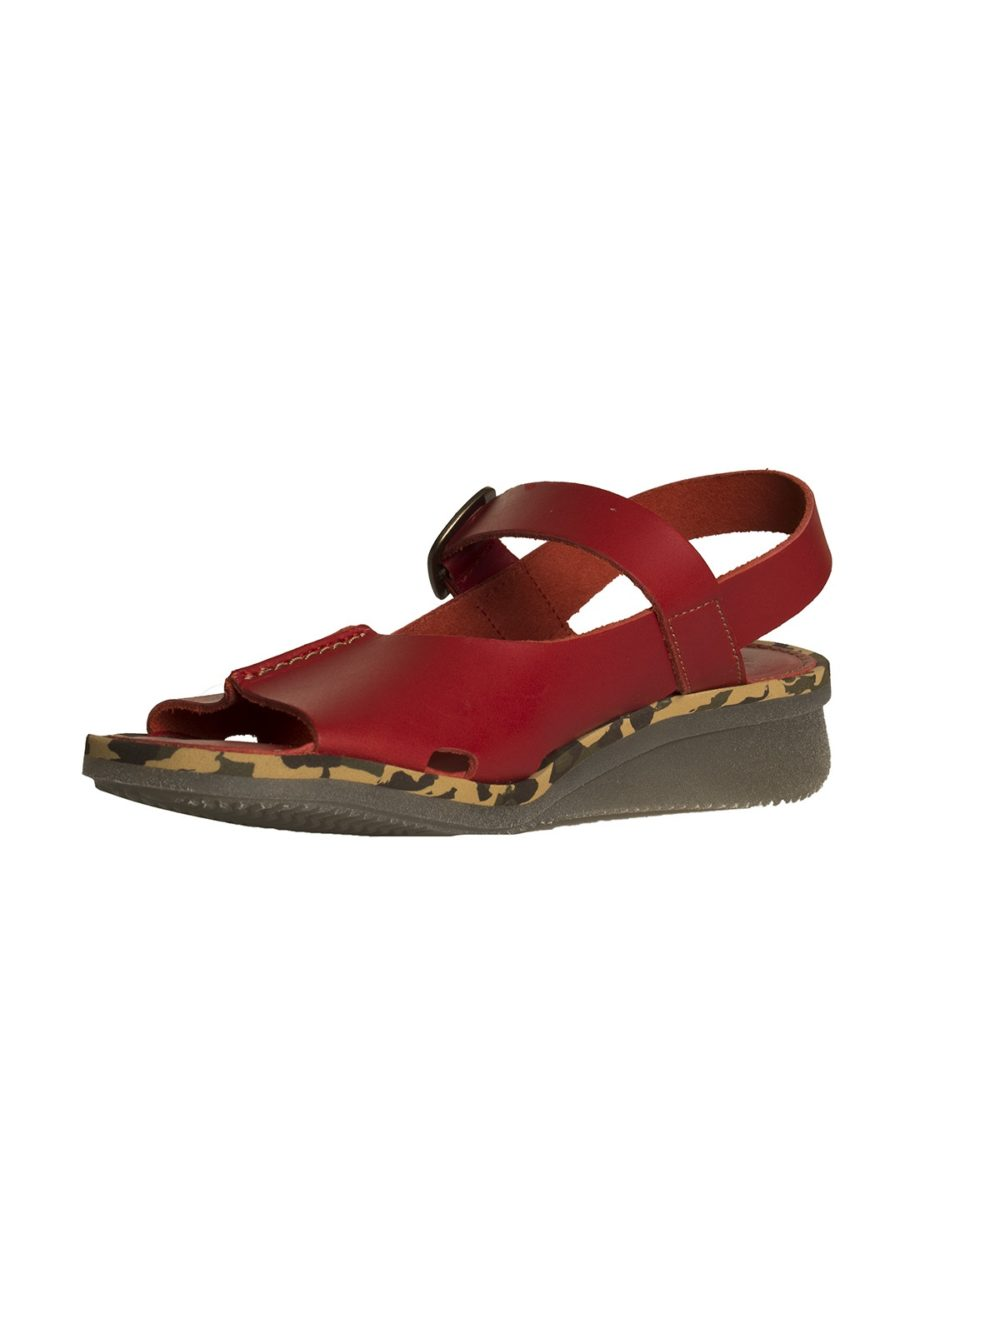 Cult Sandal Fly London Katie Kerr Women's Sandals